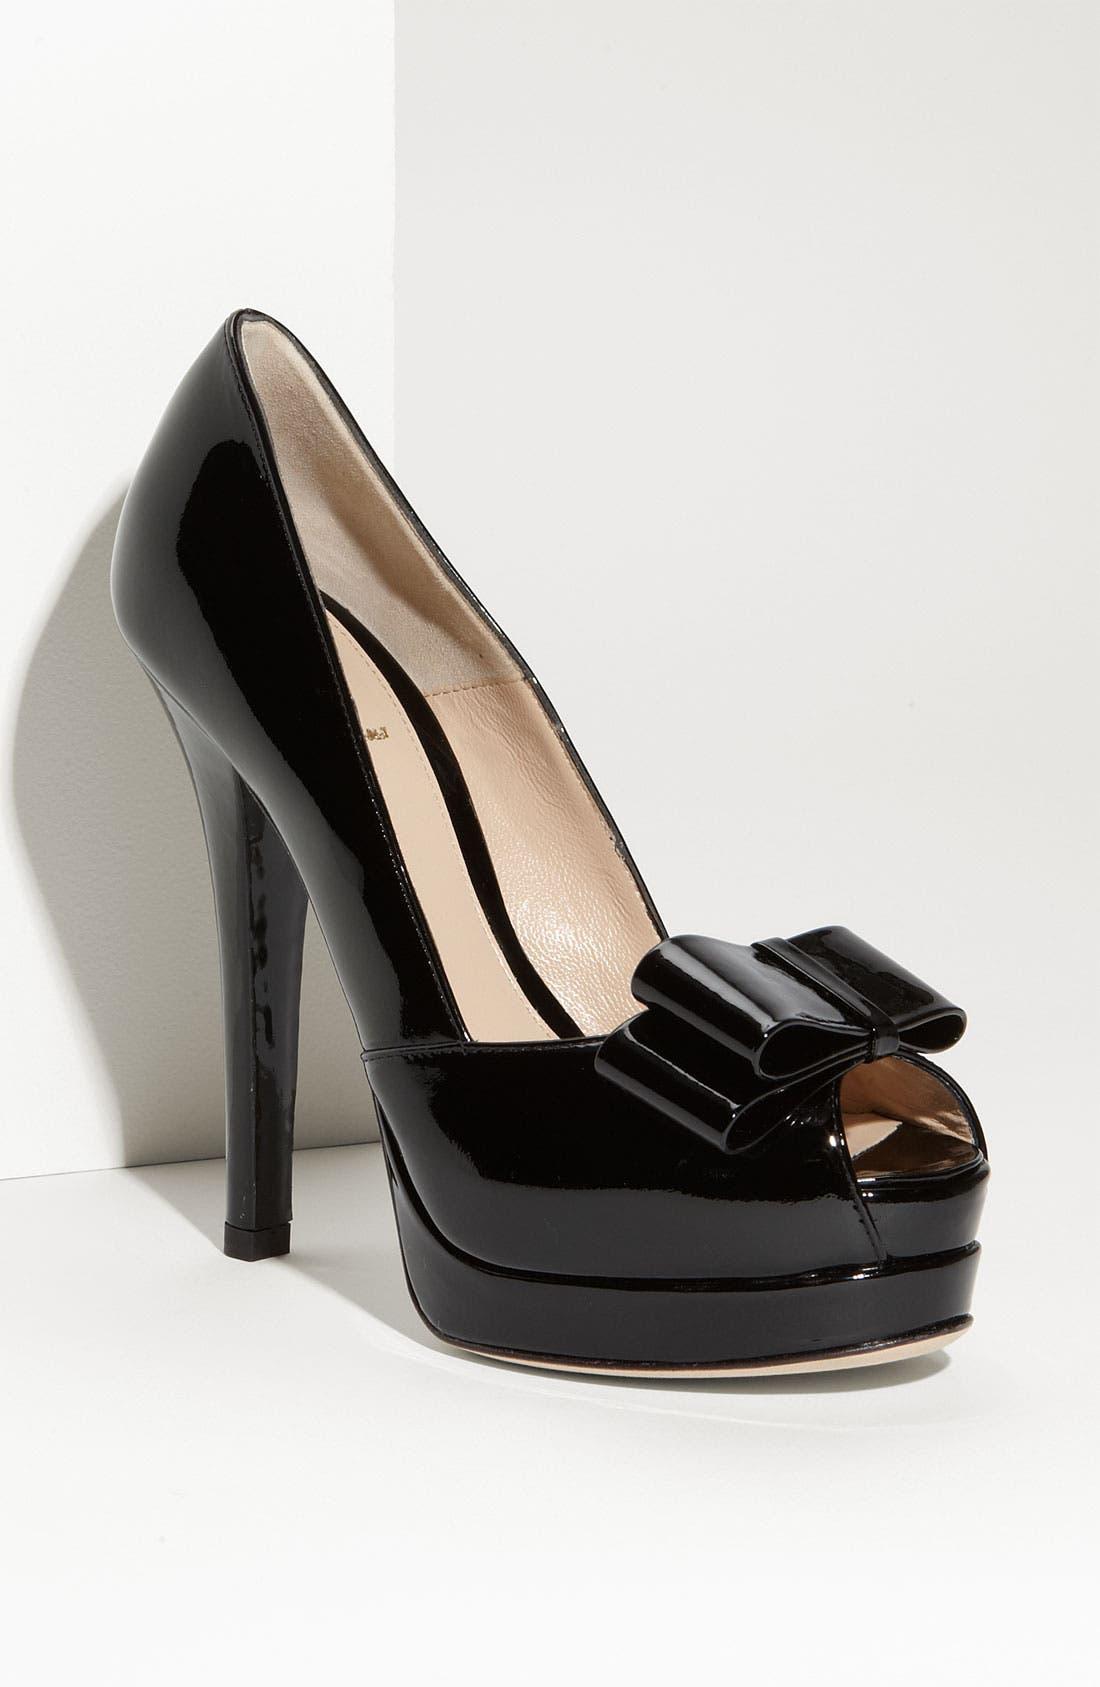 Alternate Image 1 Selected - Fendi 'Deco' Bow Trim Pump